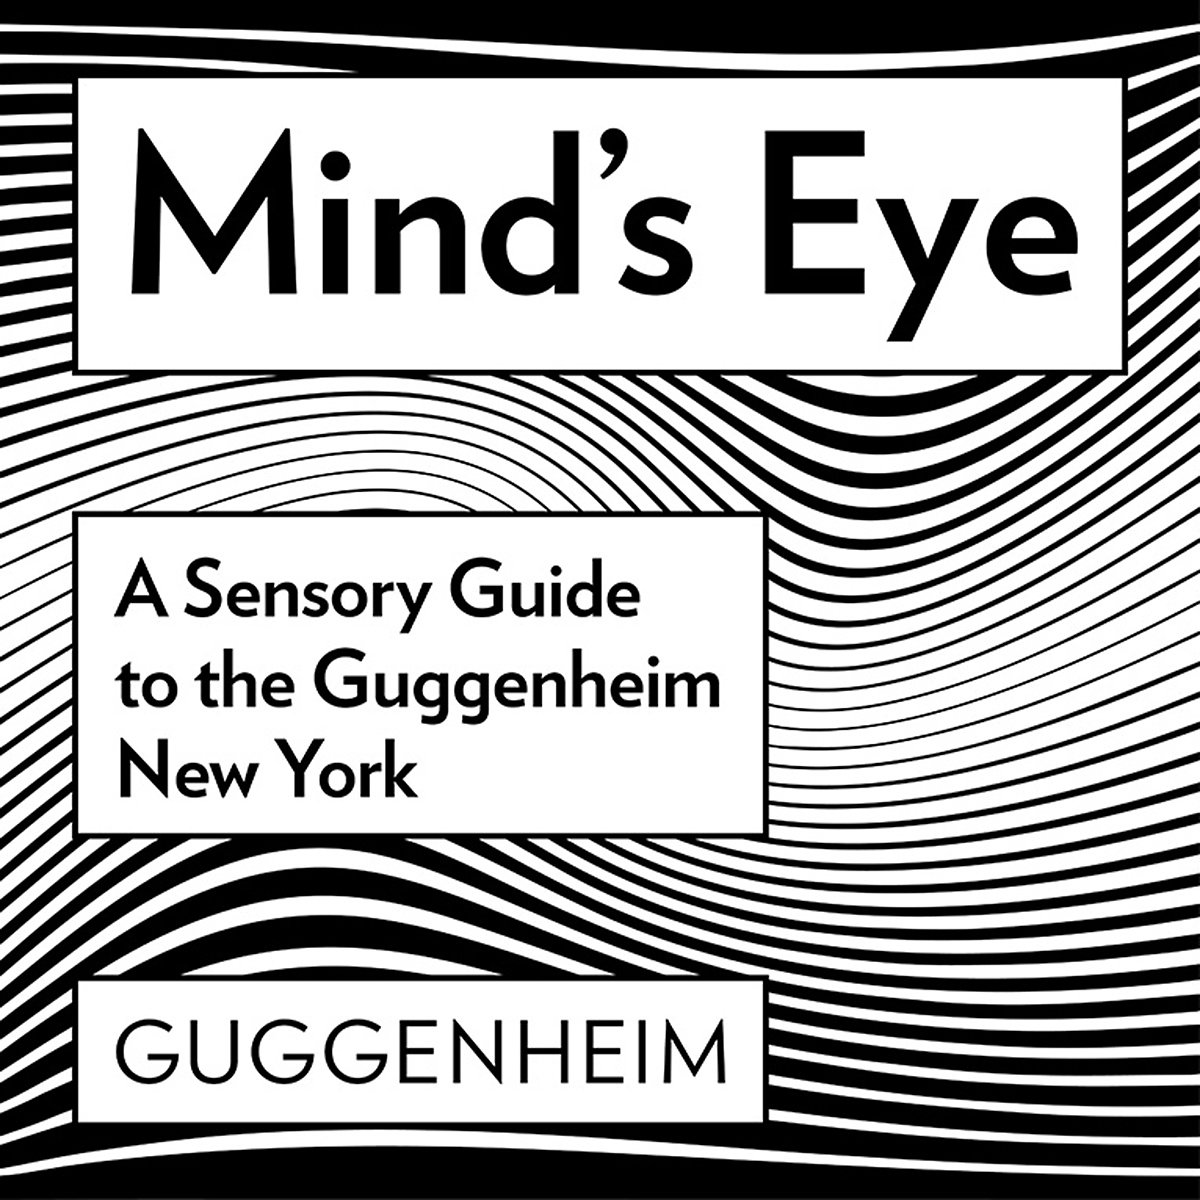 Mind's Eye - A Sensory Guide to the Guggenheim New York